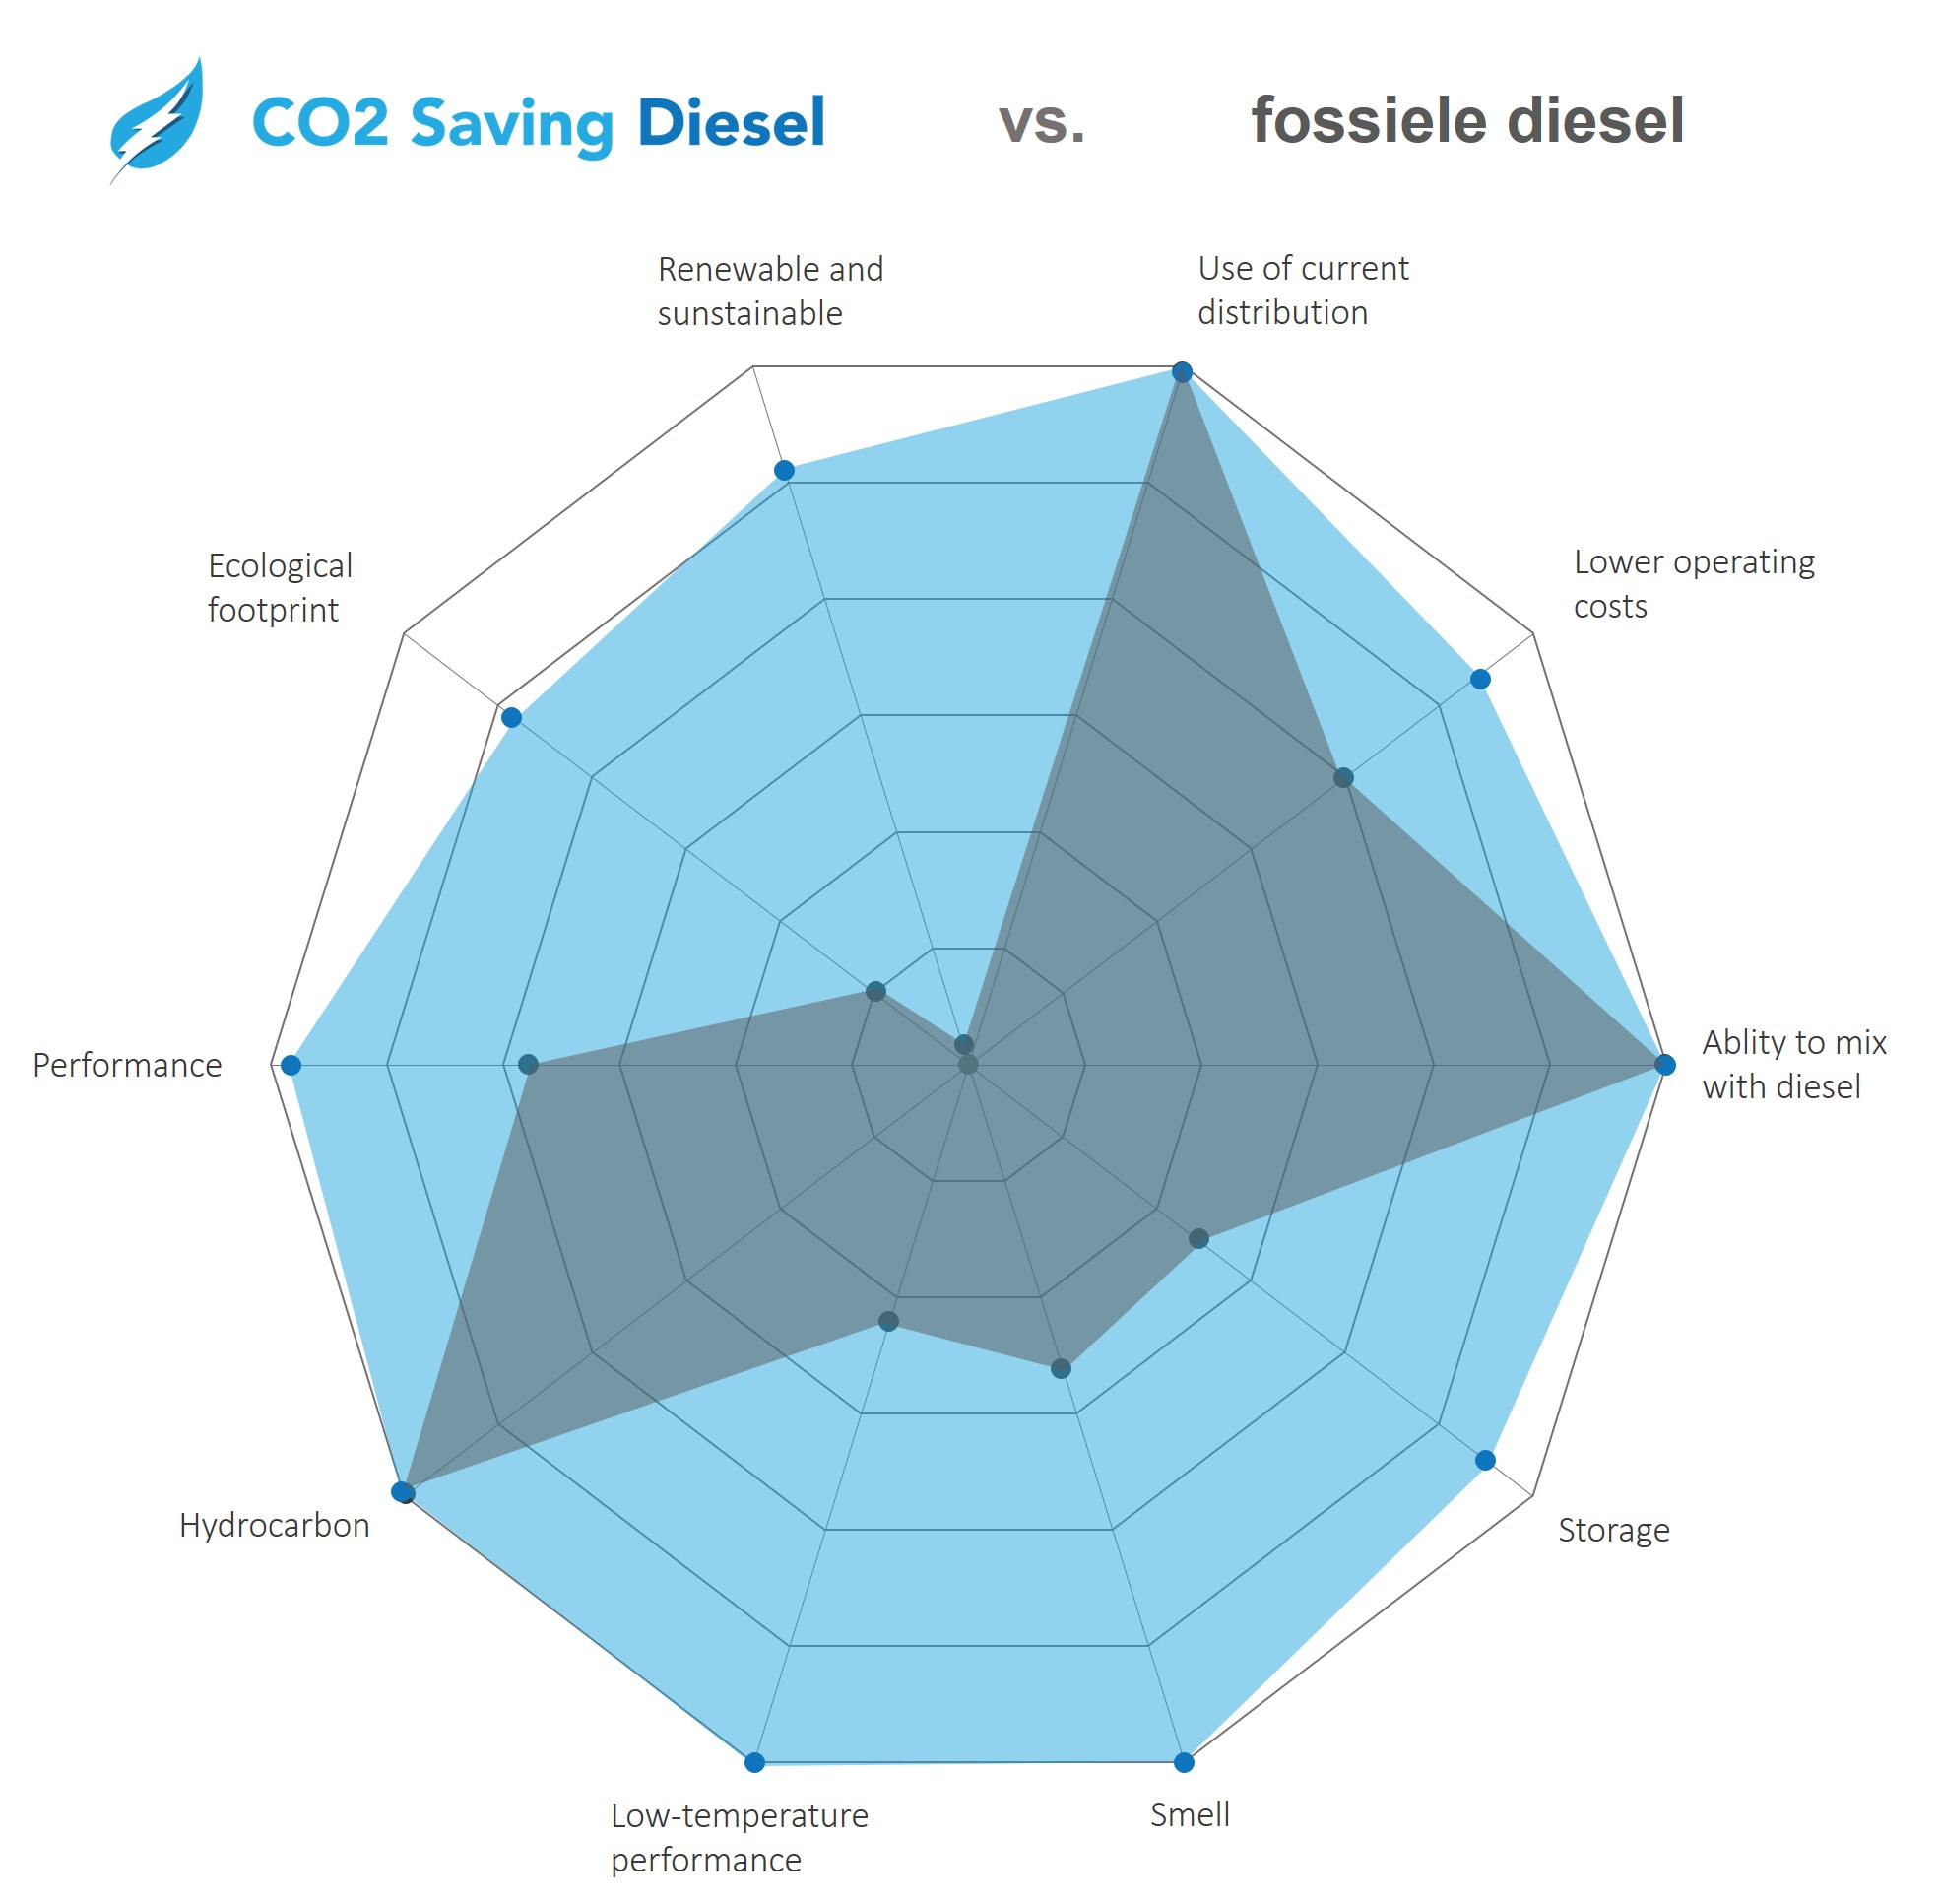 Prestatie performance HVO CO2 Saving Diesel